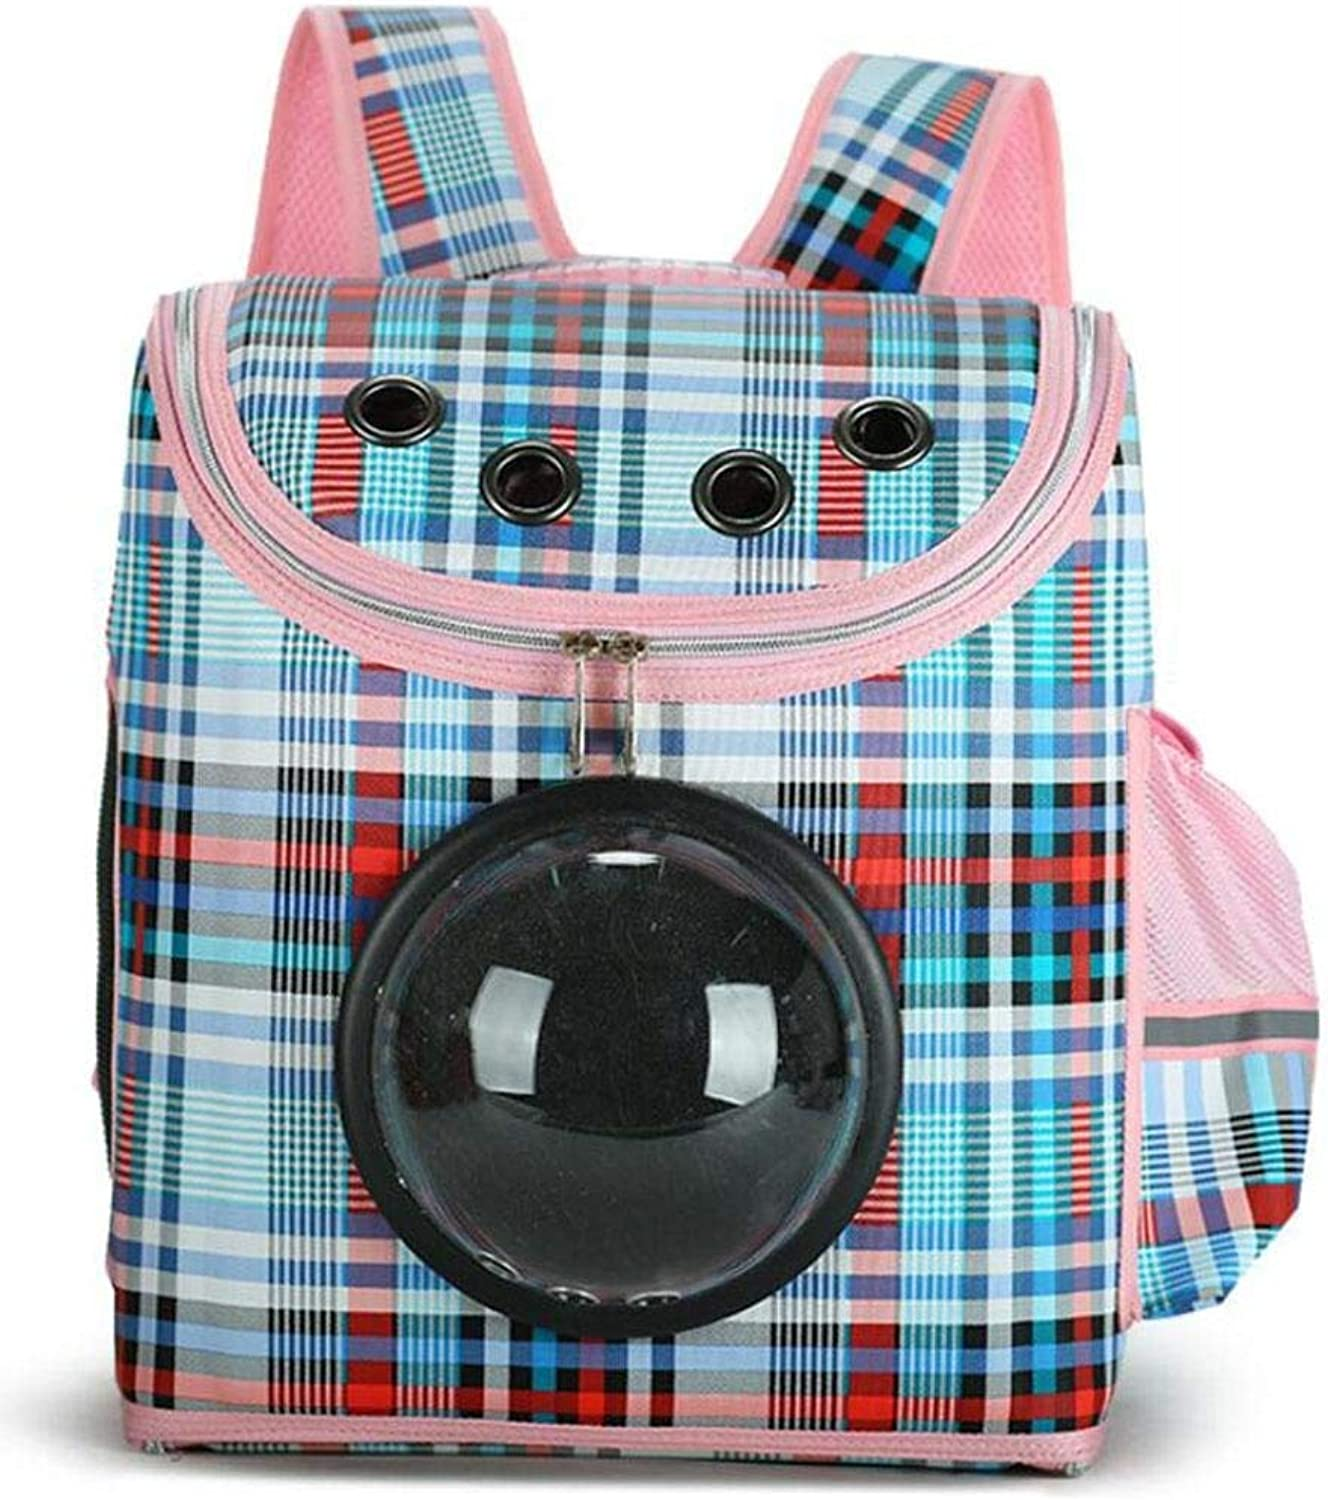 Pet Travel Carrier Dog Cat Puppy Pet Carrier Bag Innovative Traveler Bubble Pet Backpack Double Shoulder Bag Airline Travel Approved Space Pet Carriers Breathable Mesh Window for Traveling, Camping,